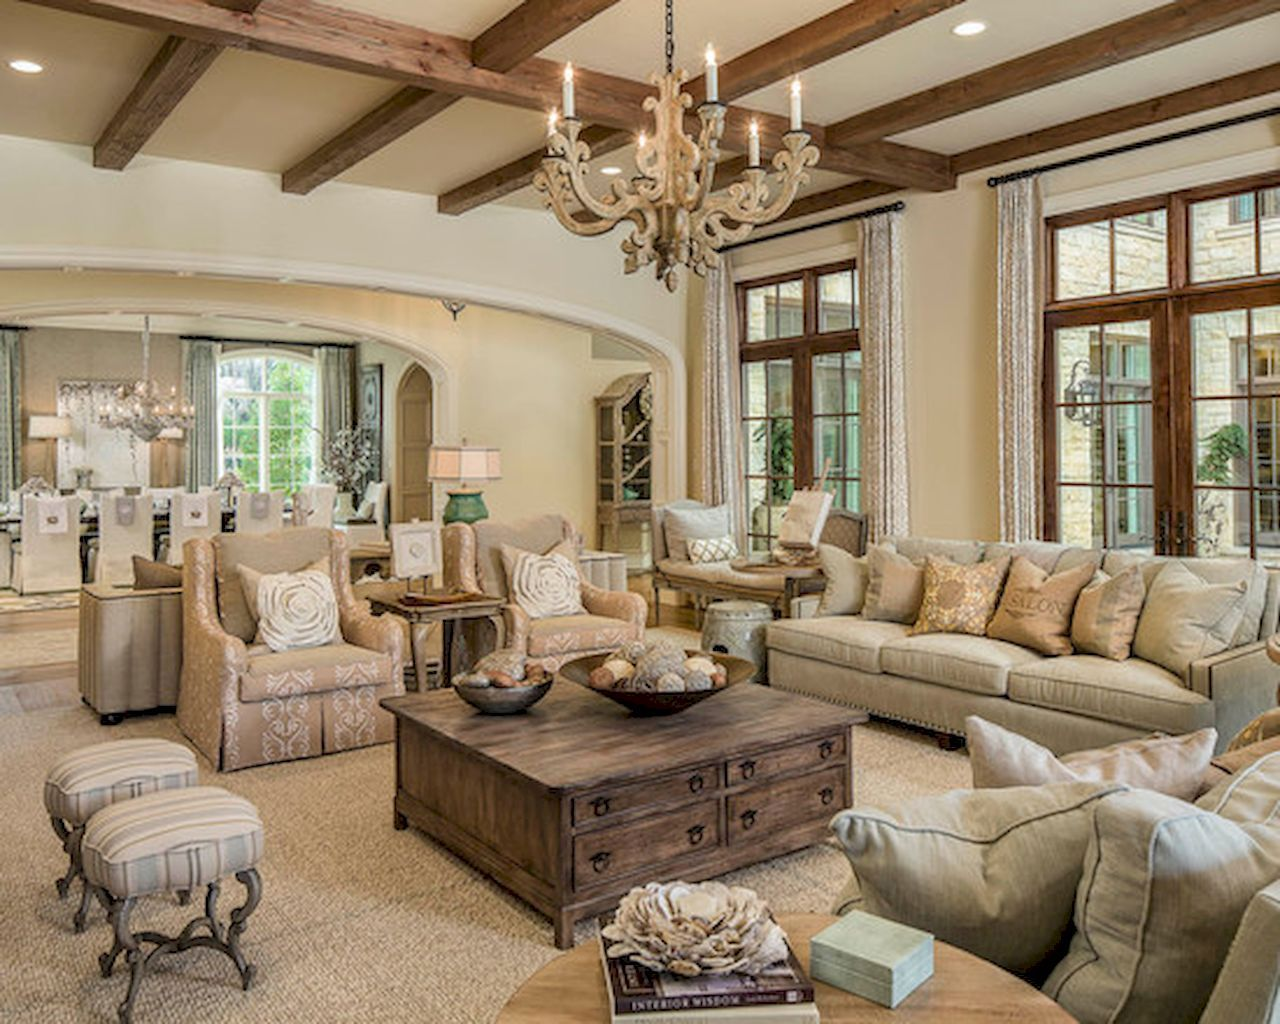 Fancy French Country Living Room Decor Ideas 48 Traditional